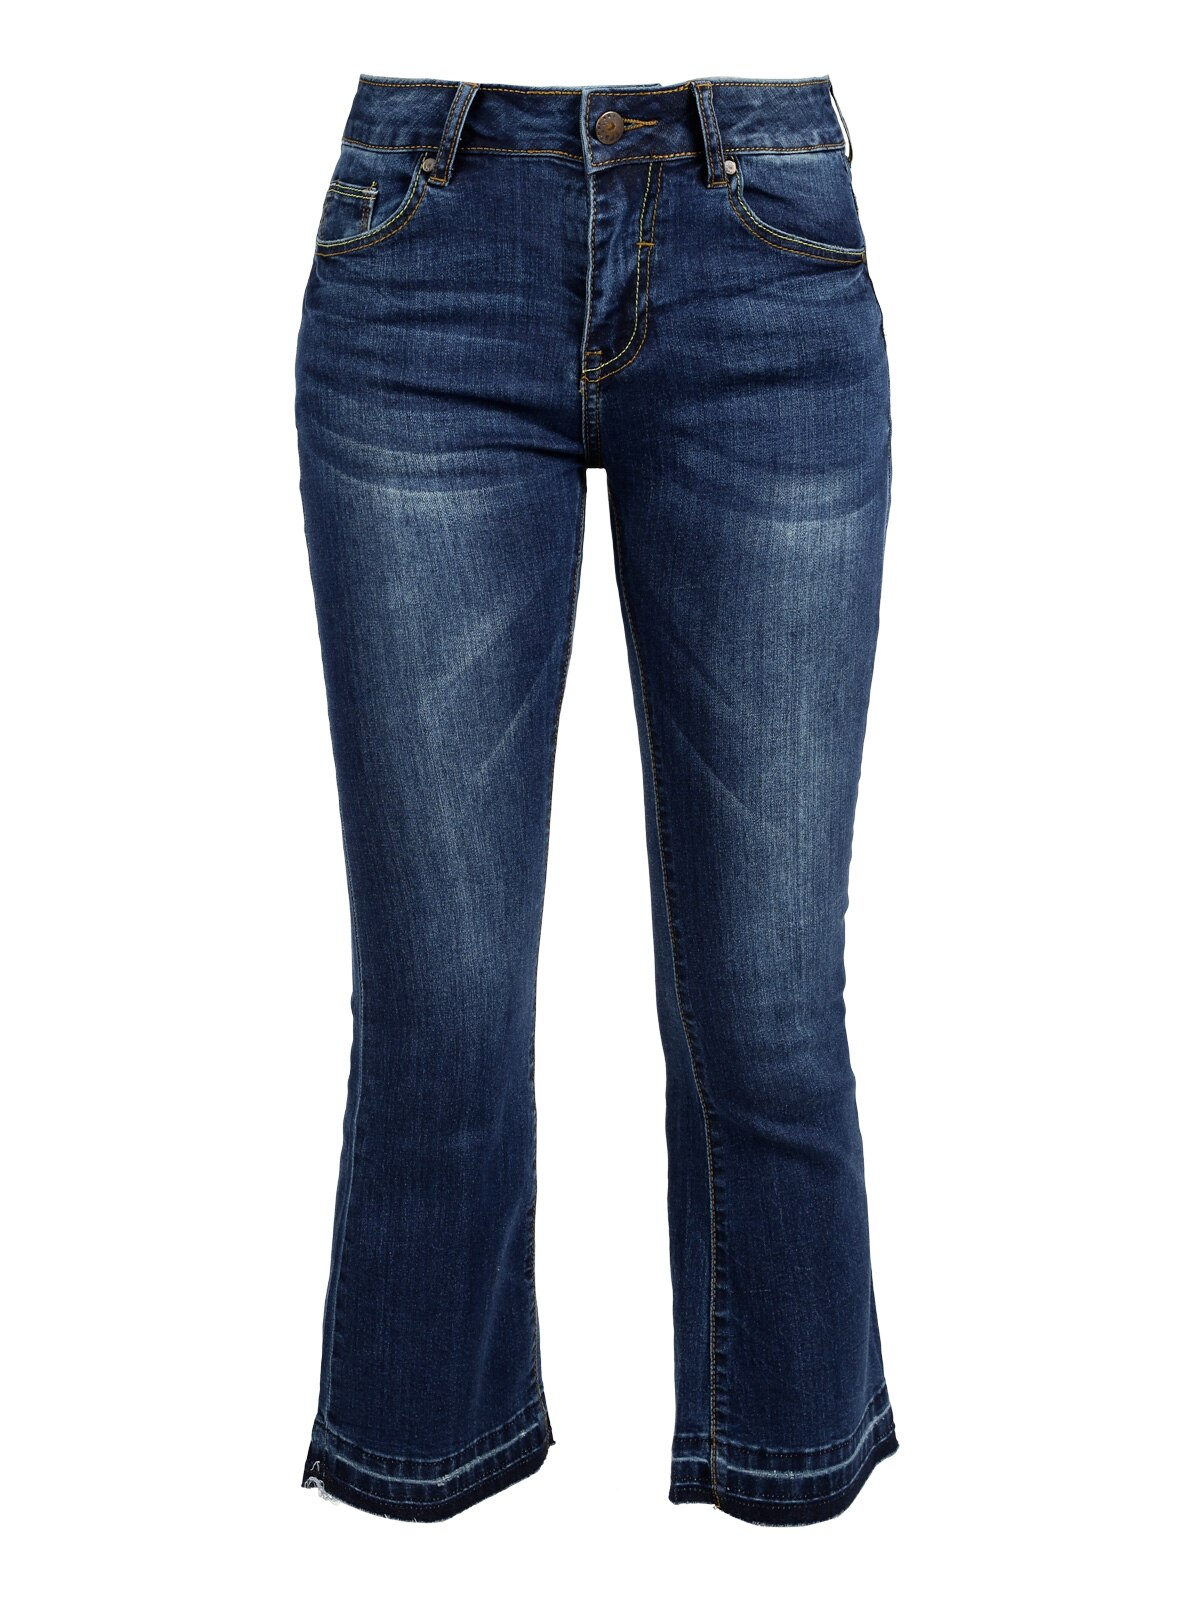 Woman flare jeans vertical straight three quarter flare trousers 2